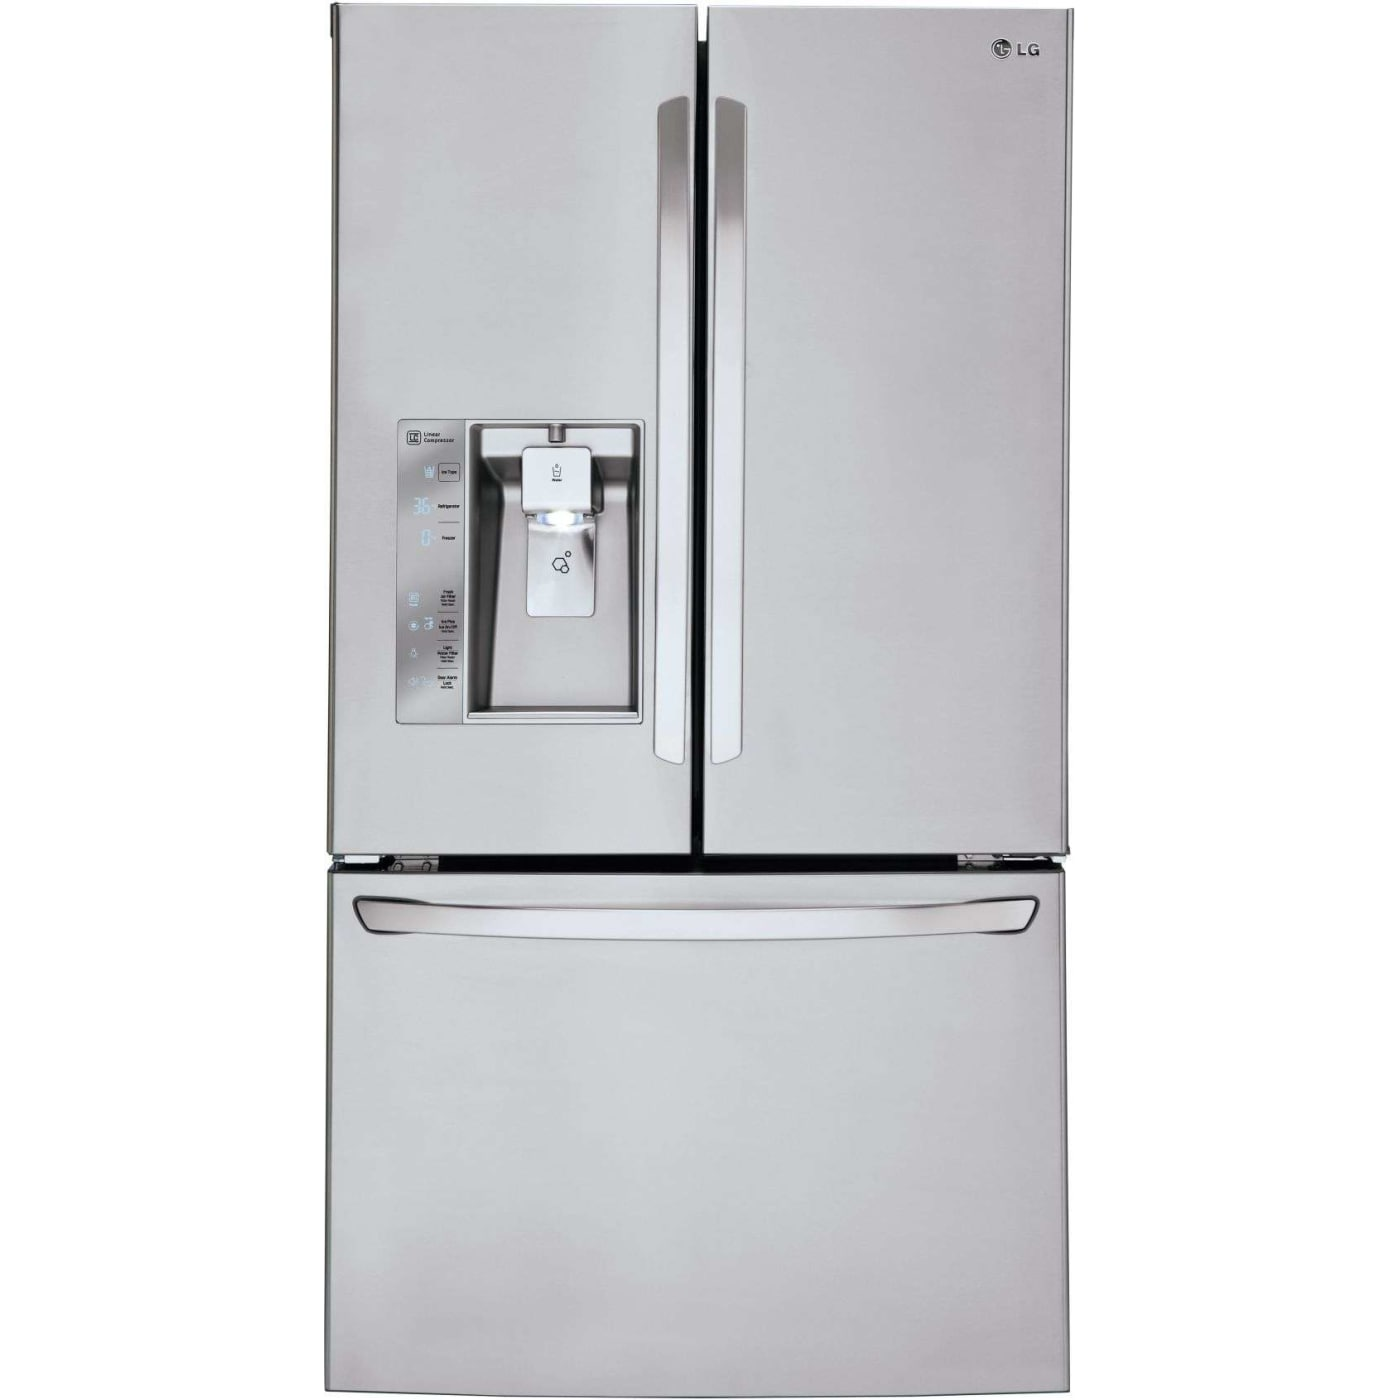 unusual refrigerator lg double door. Stainless Steel French Door Refrigerator  Energy Star LG LFXS30726S 36 29 8 cu ft